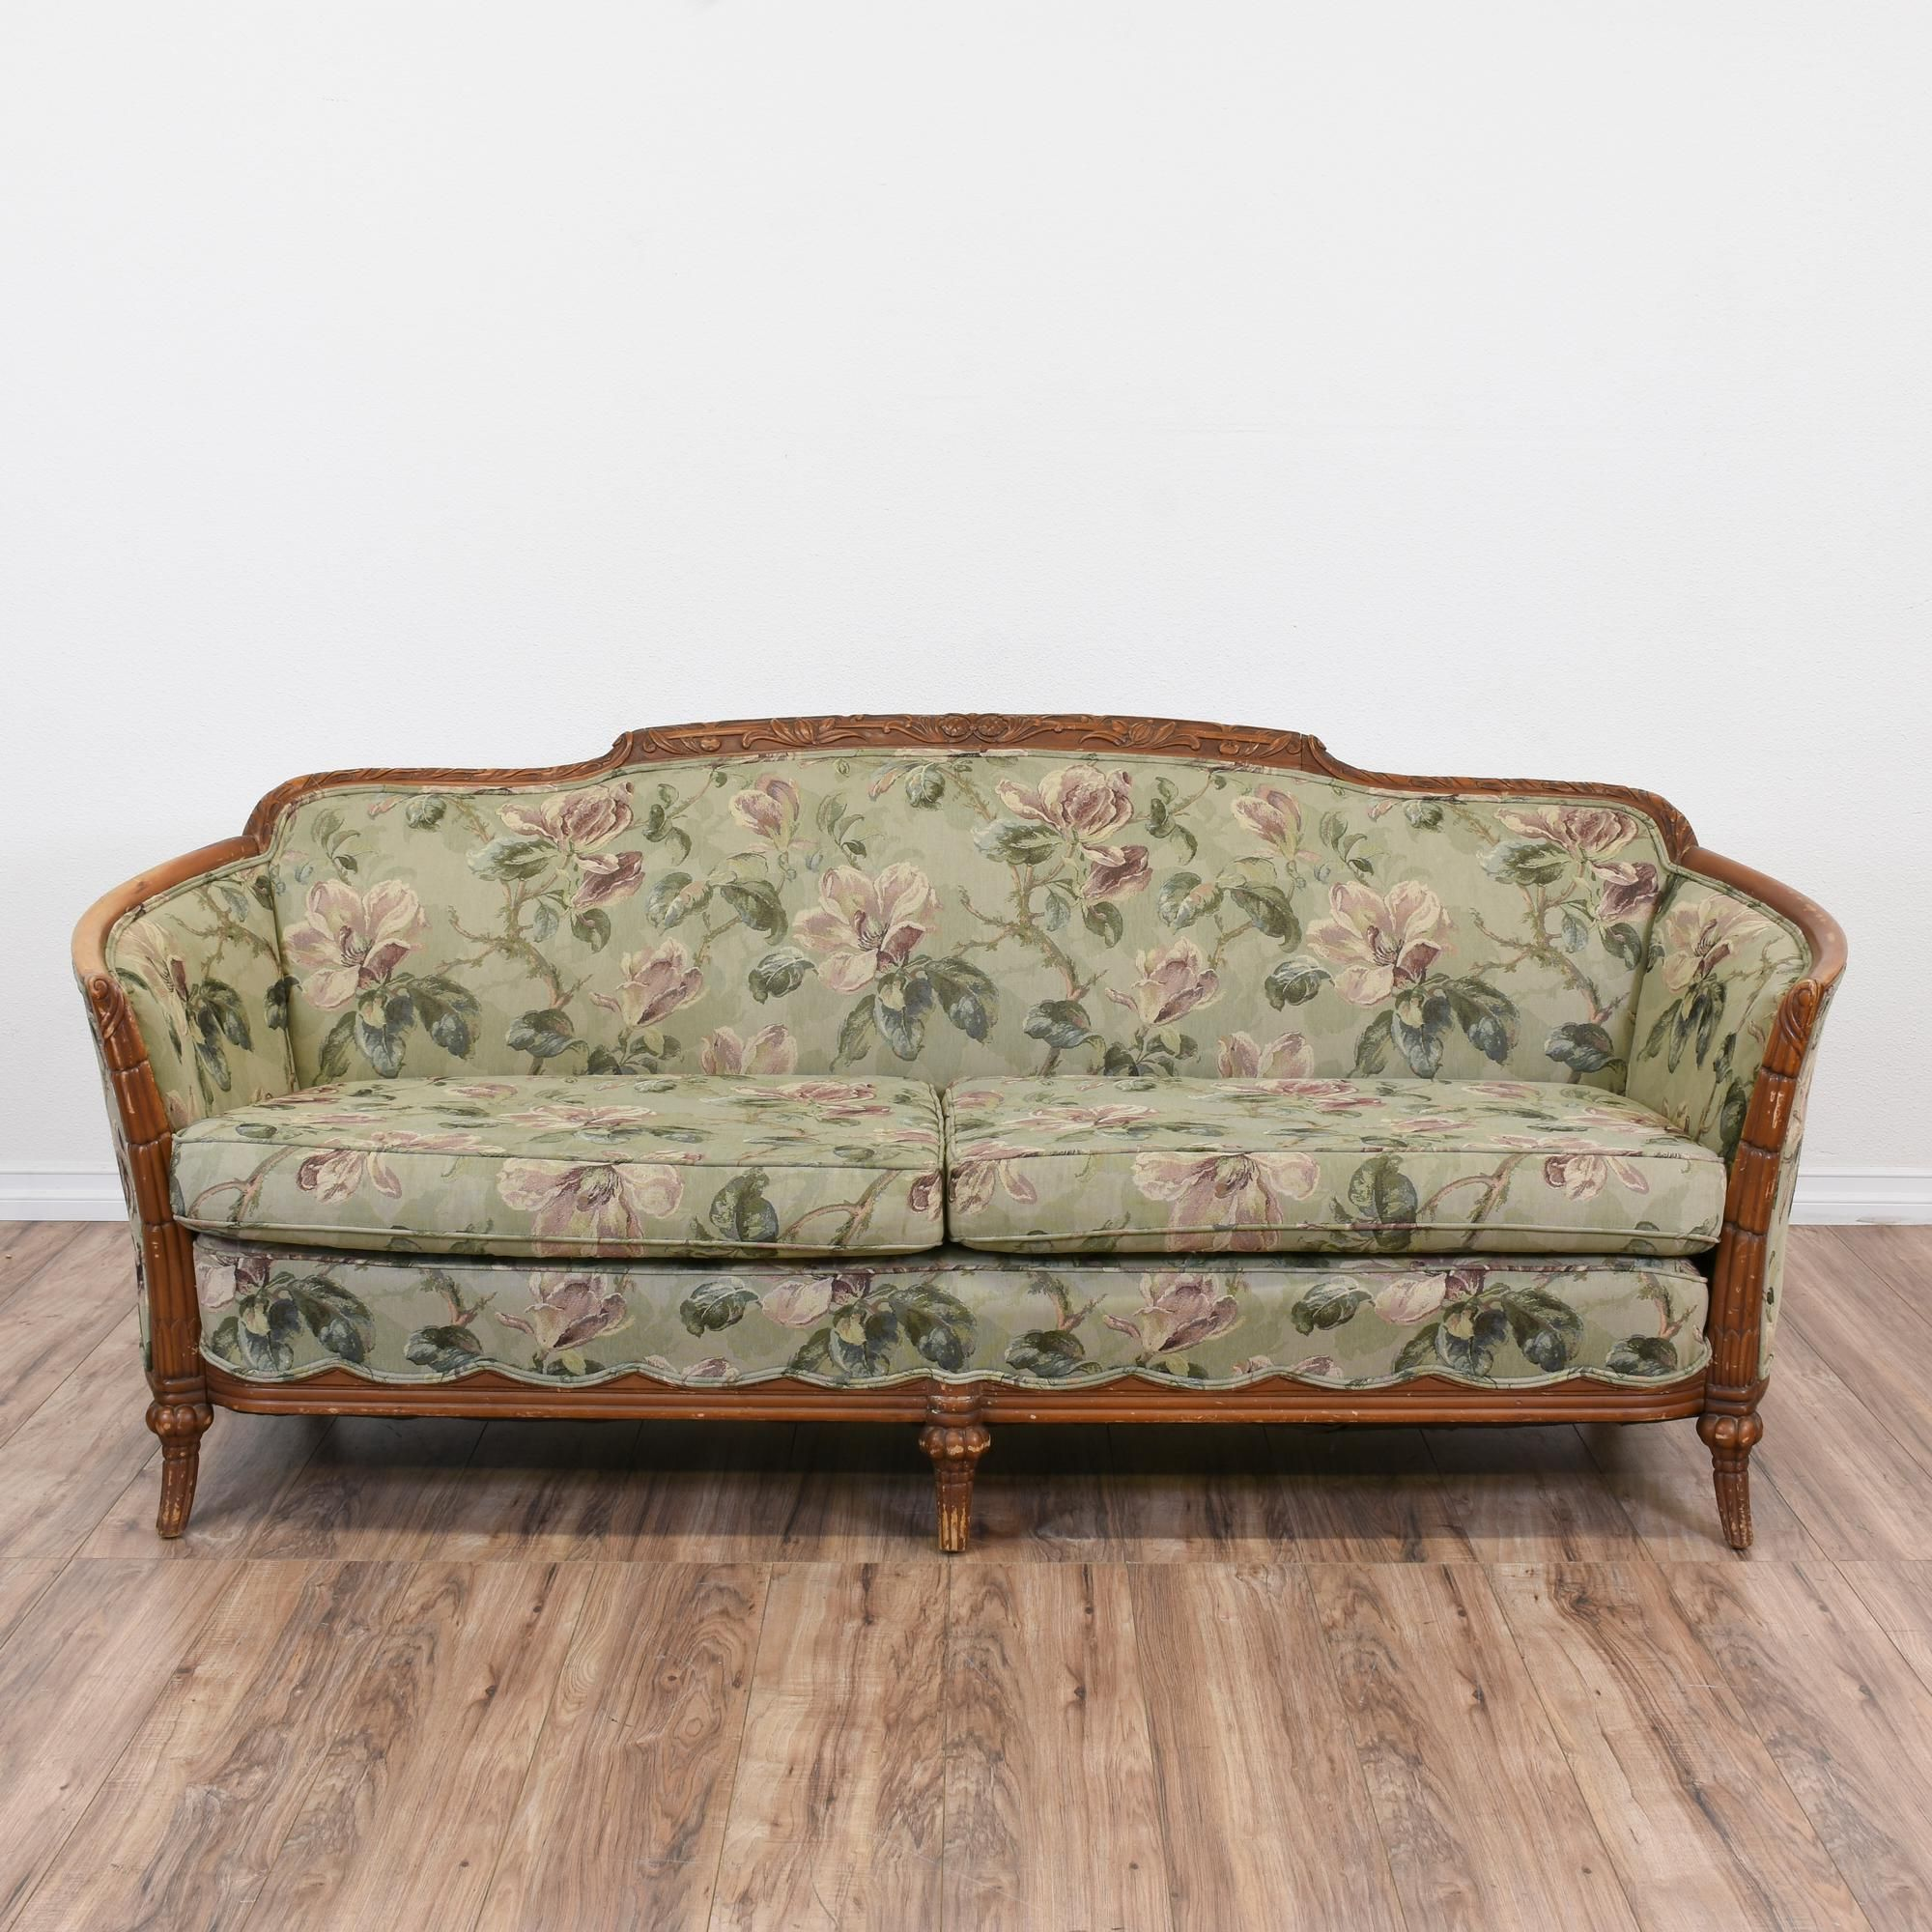 This sofa is upholstered in a durable sage green needlepoint